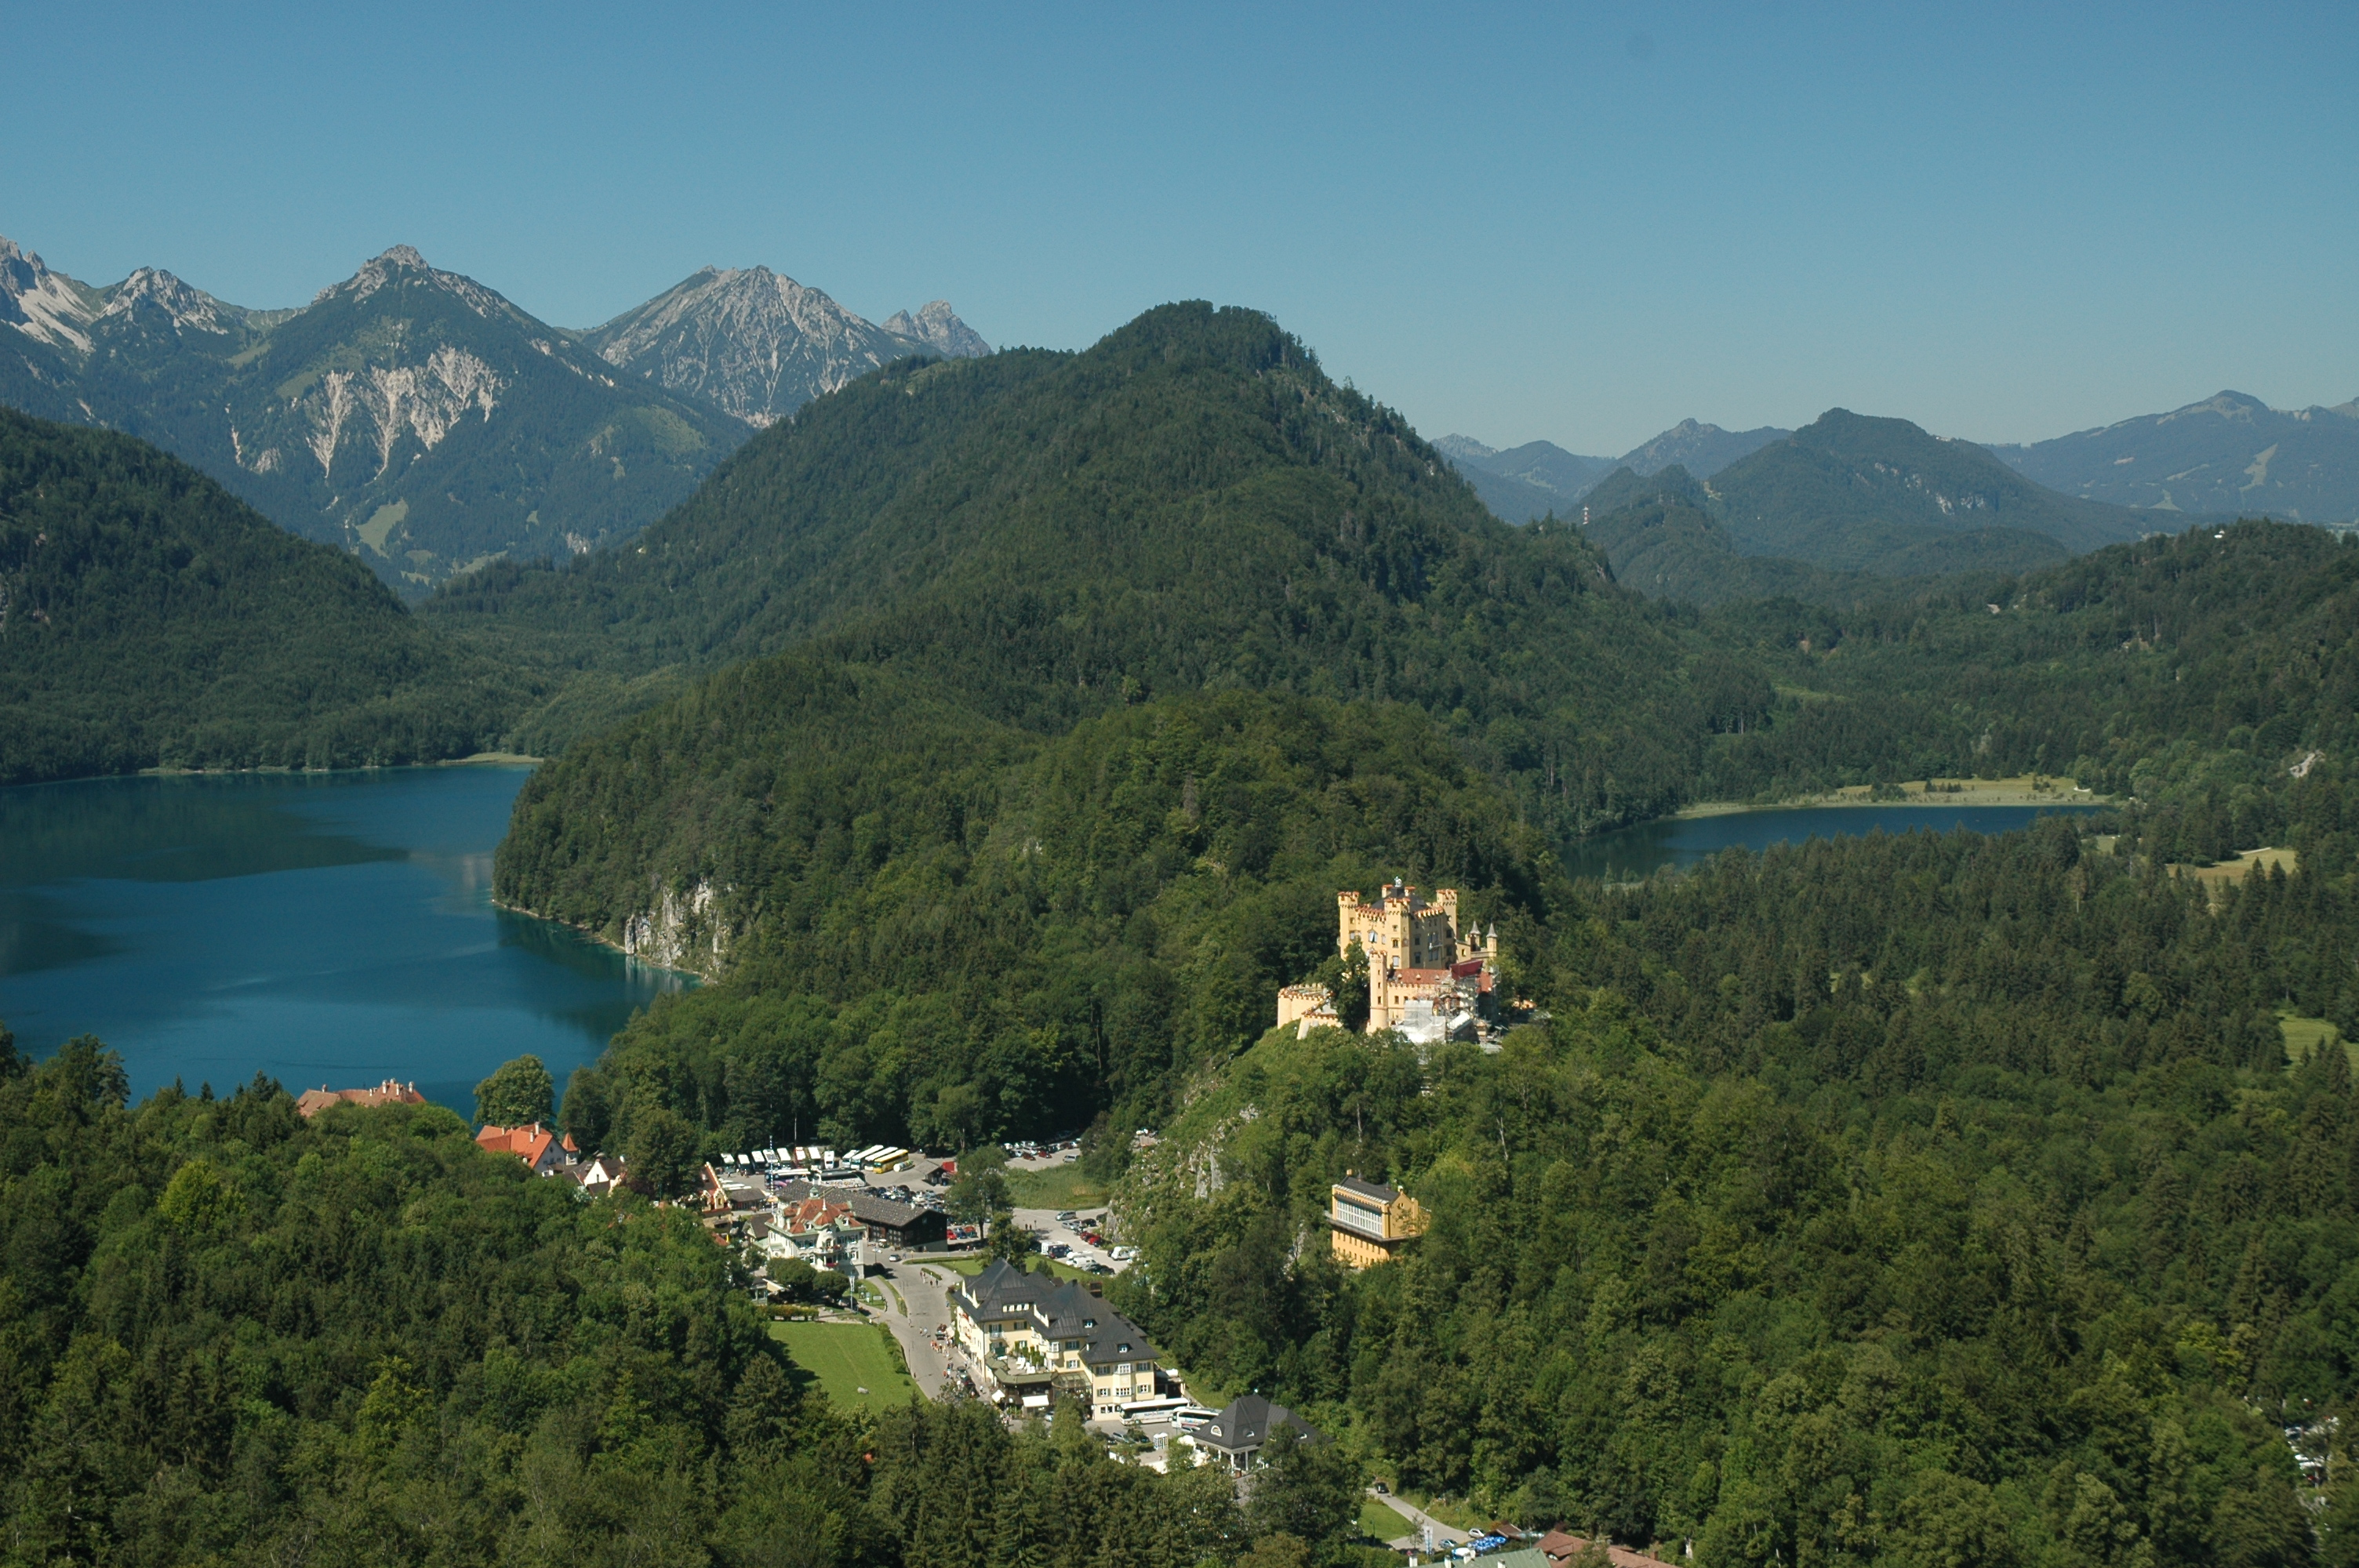 https://upload.wikimedia.org/wikipedia/commons/8/8c/Hohenschwangau_Castle_and_Village.jpg